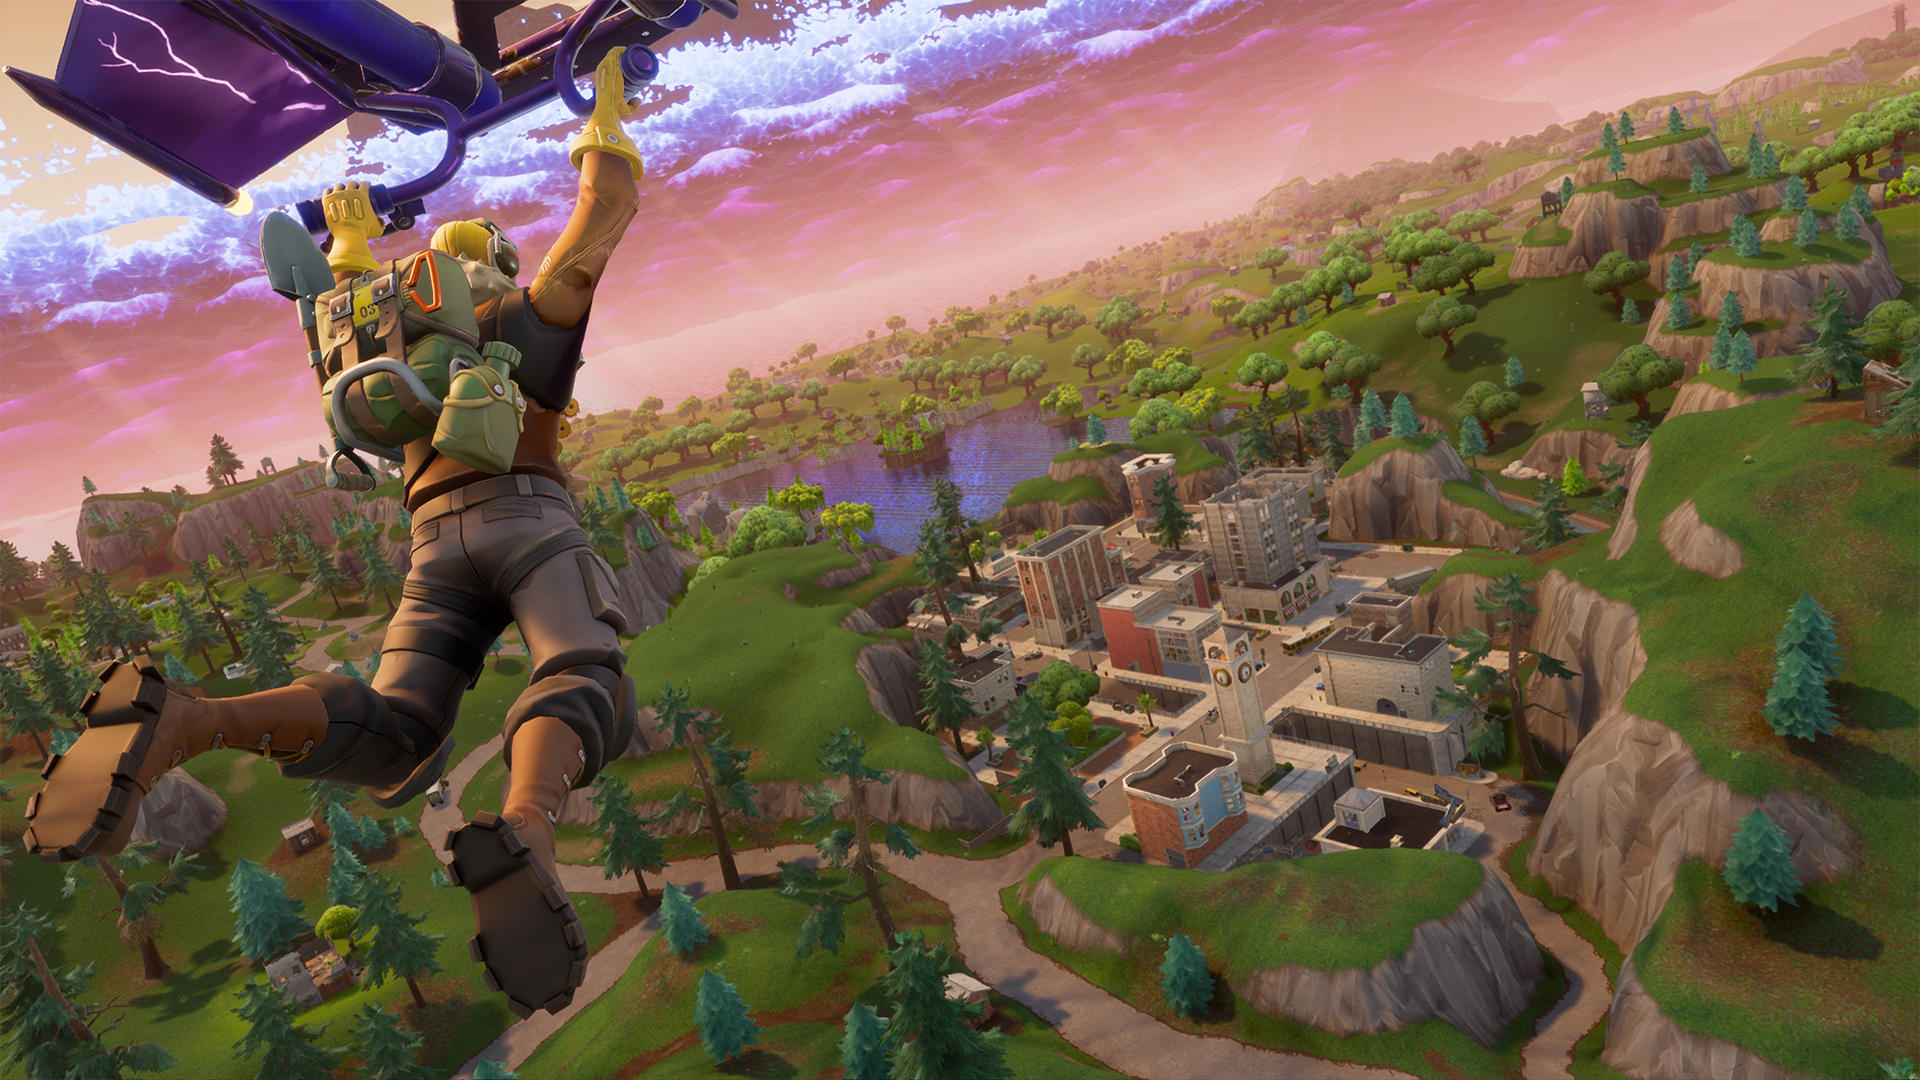 Fortnite Moisty Mire Treasure Map and Where to Find the ... on a map of jupiter, a map of life, a map of love, a map of odyssey, a map of home, a map of sahara, a map of cascade, a map of time, a map of roosevelt, a map of ocean,